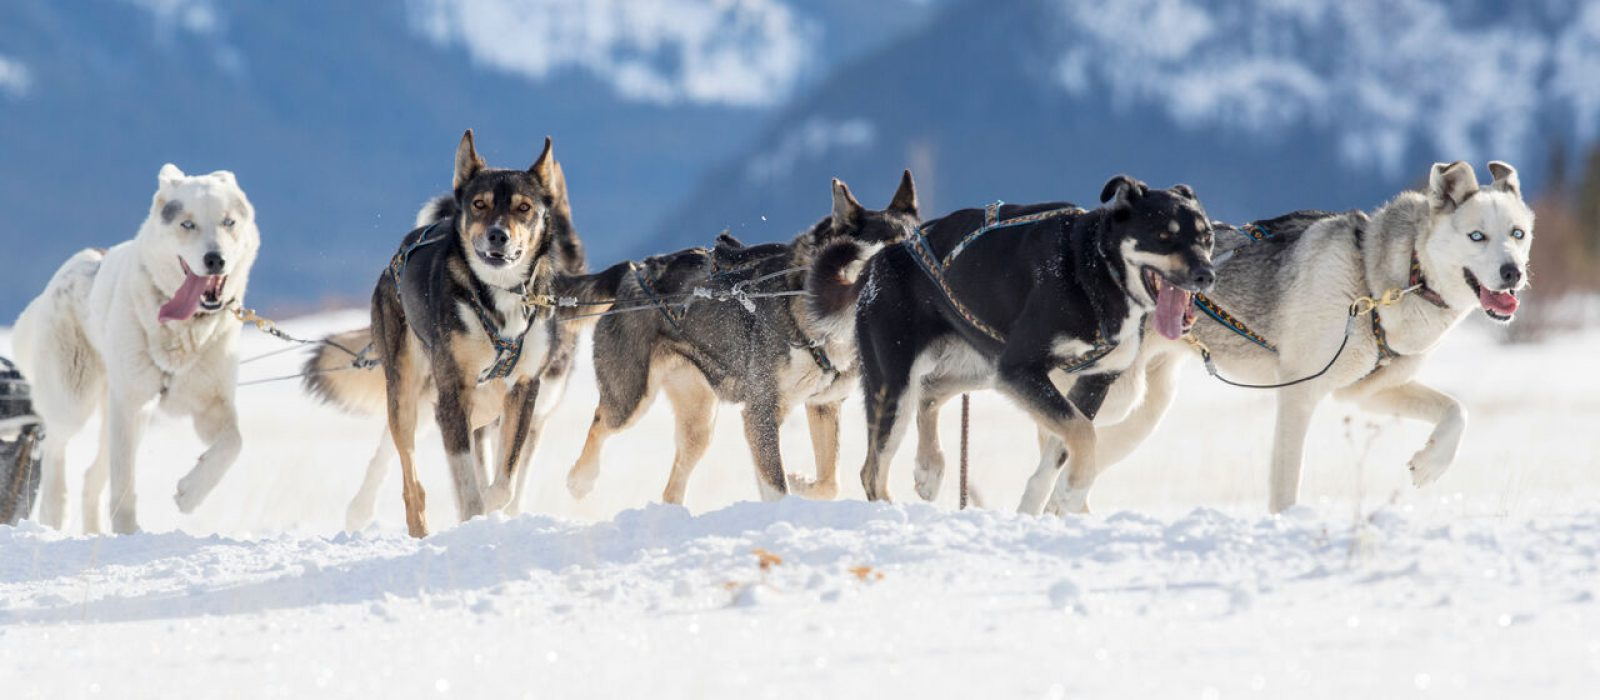 A team of huskies pulling a sled through the snow. Taken in Kananaskis Country, Alberta